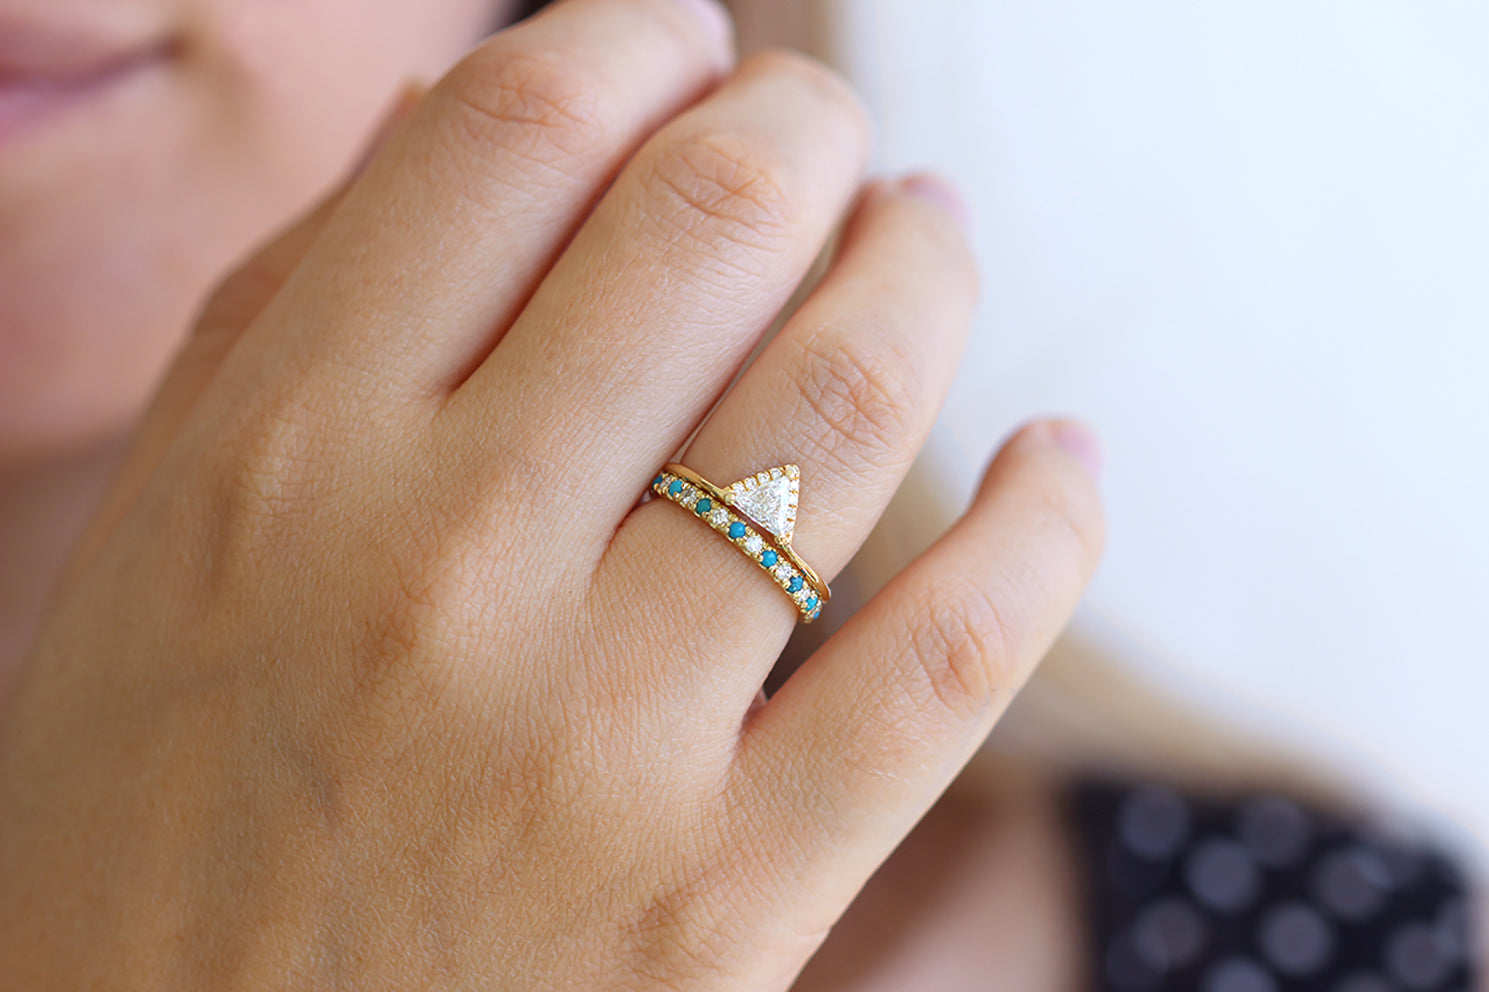 Turquoise Wedding Ring with Diamonds in a Set